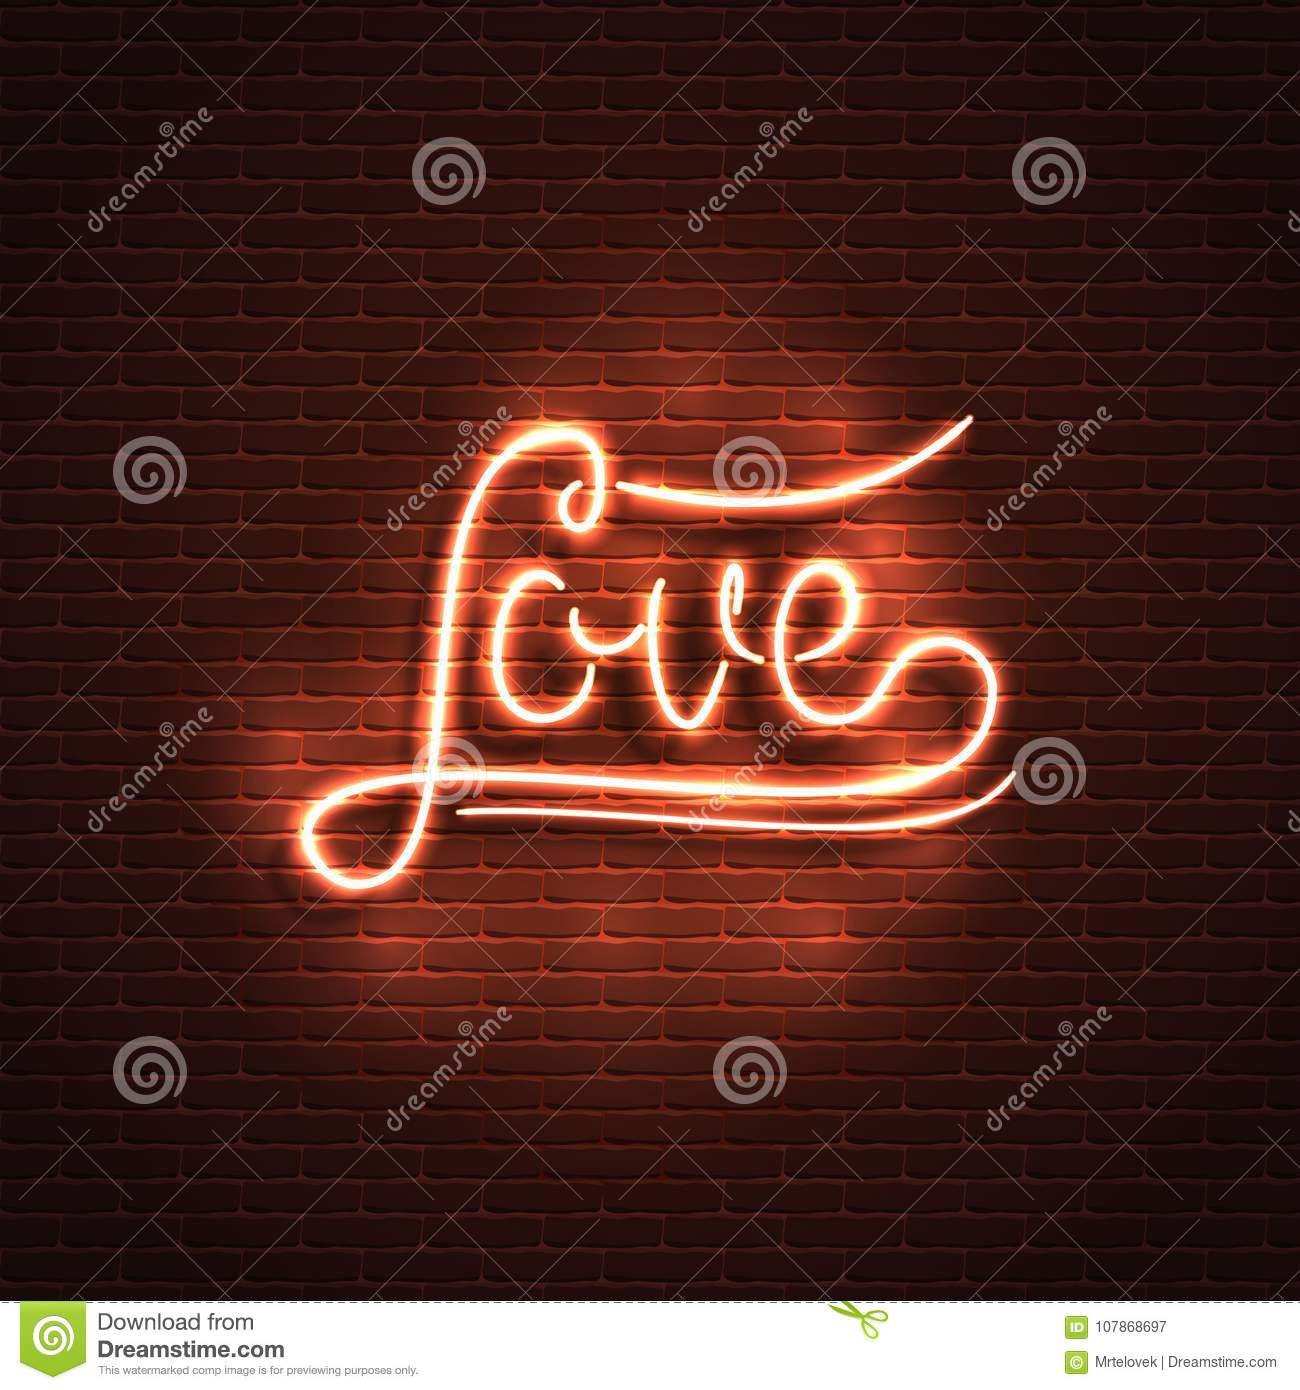 Neon sign love the word love on a brick wall background element neon sign love the word love on a brick wall background element for the st valentines day design can be used for icon light buycottarizona Choice Image